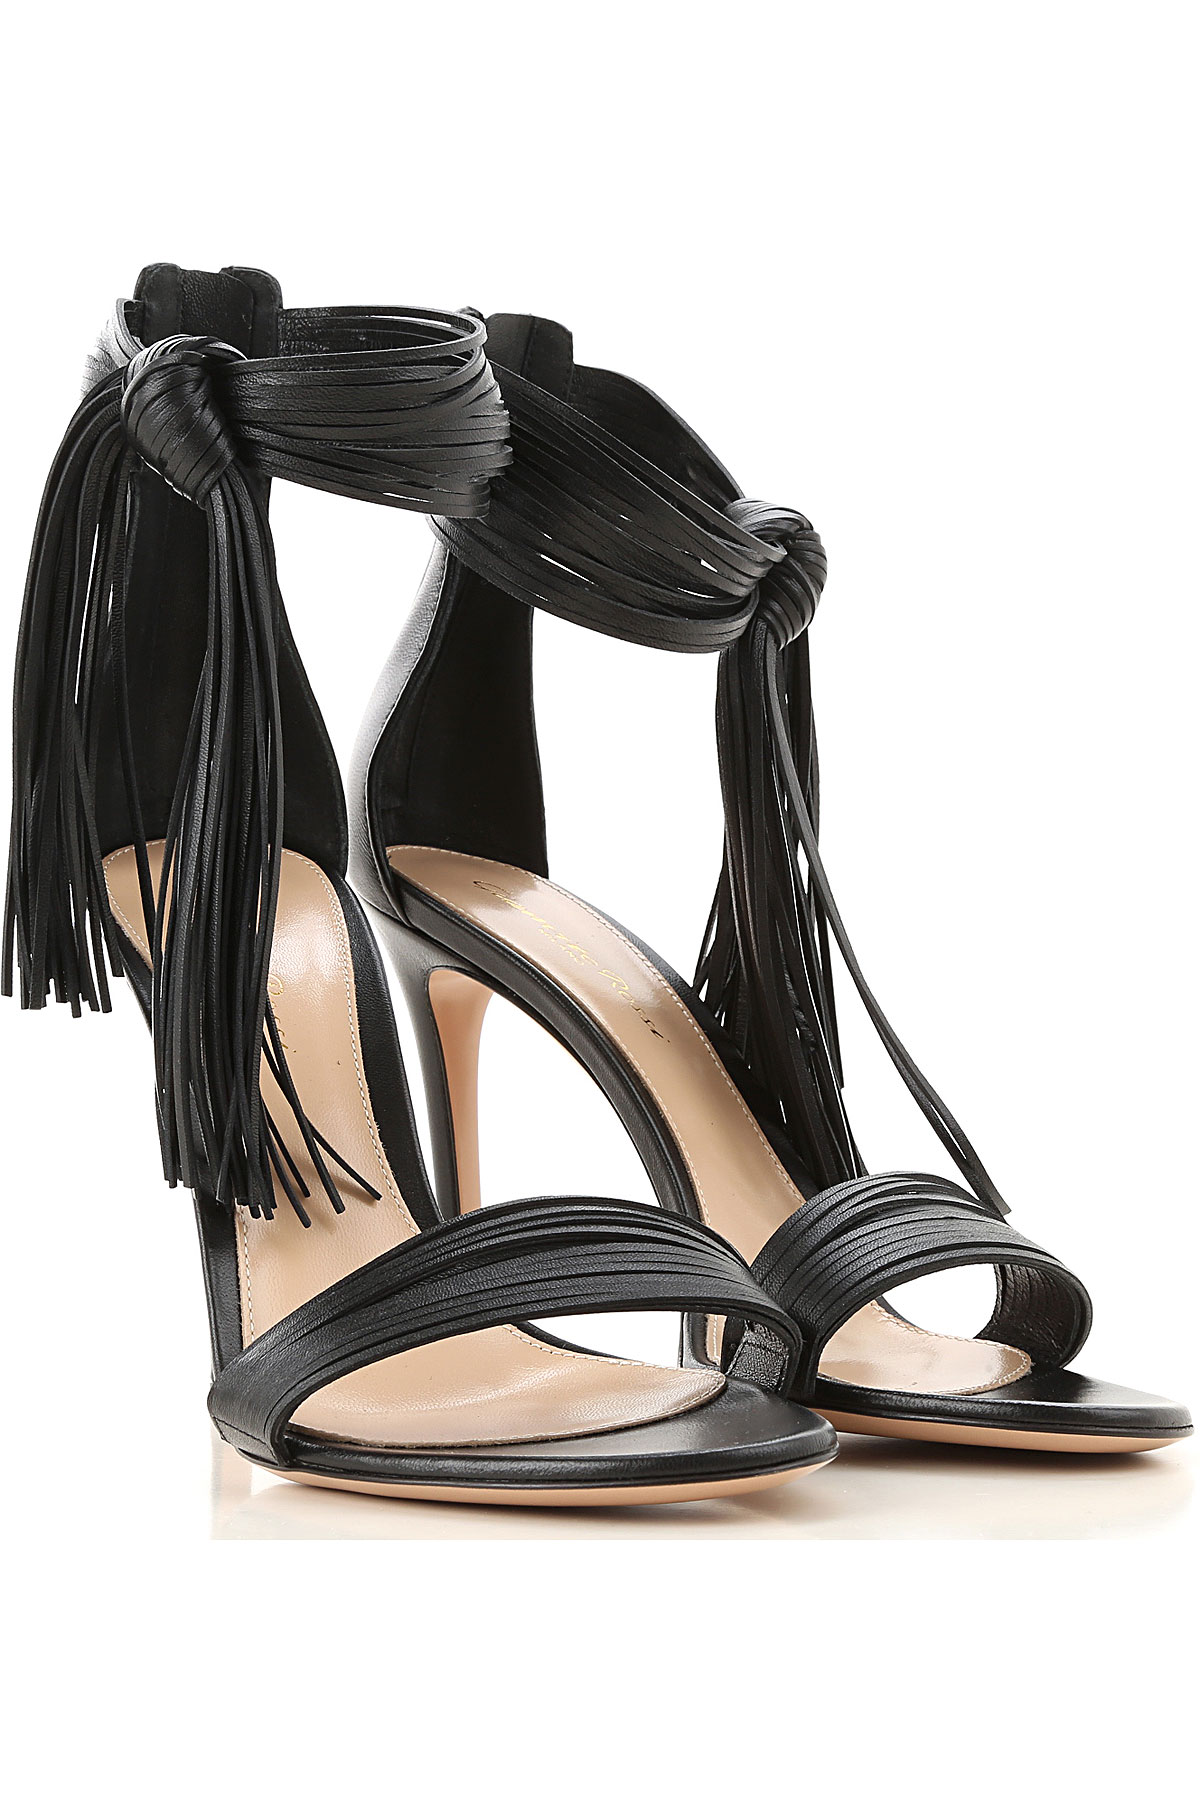 Gianvito Rossi Sandals for Women On Sale, Black, Leather, 2019, 5 6 6.5 7 8 9